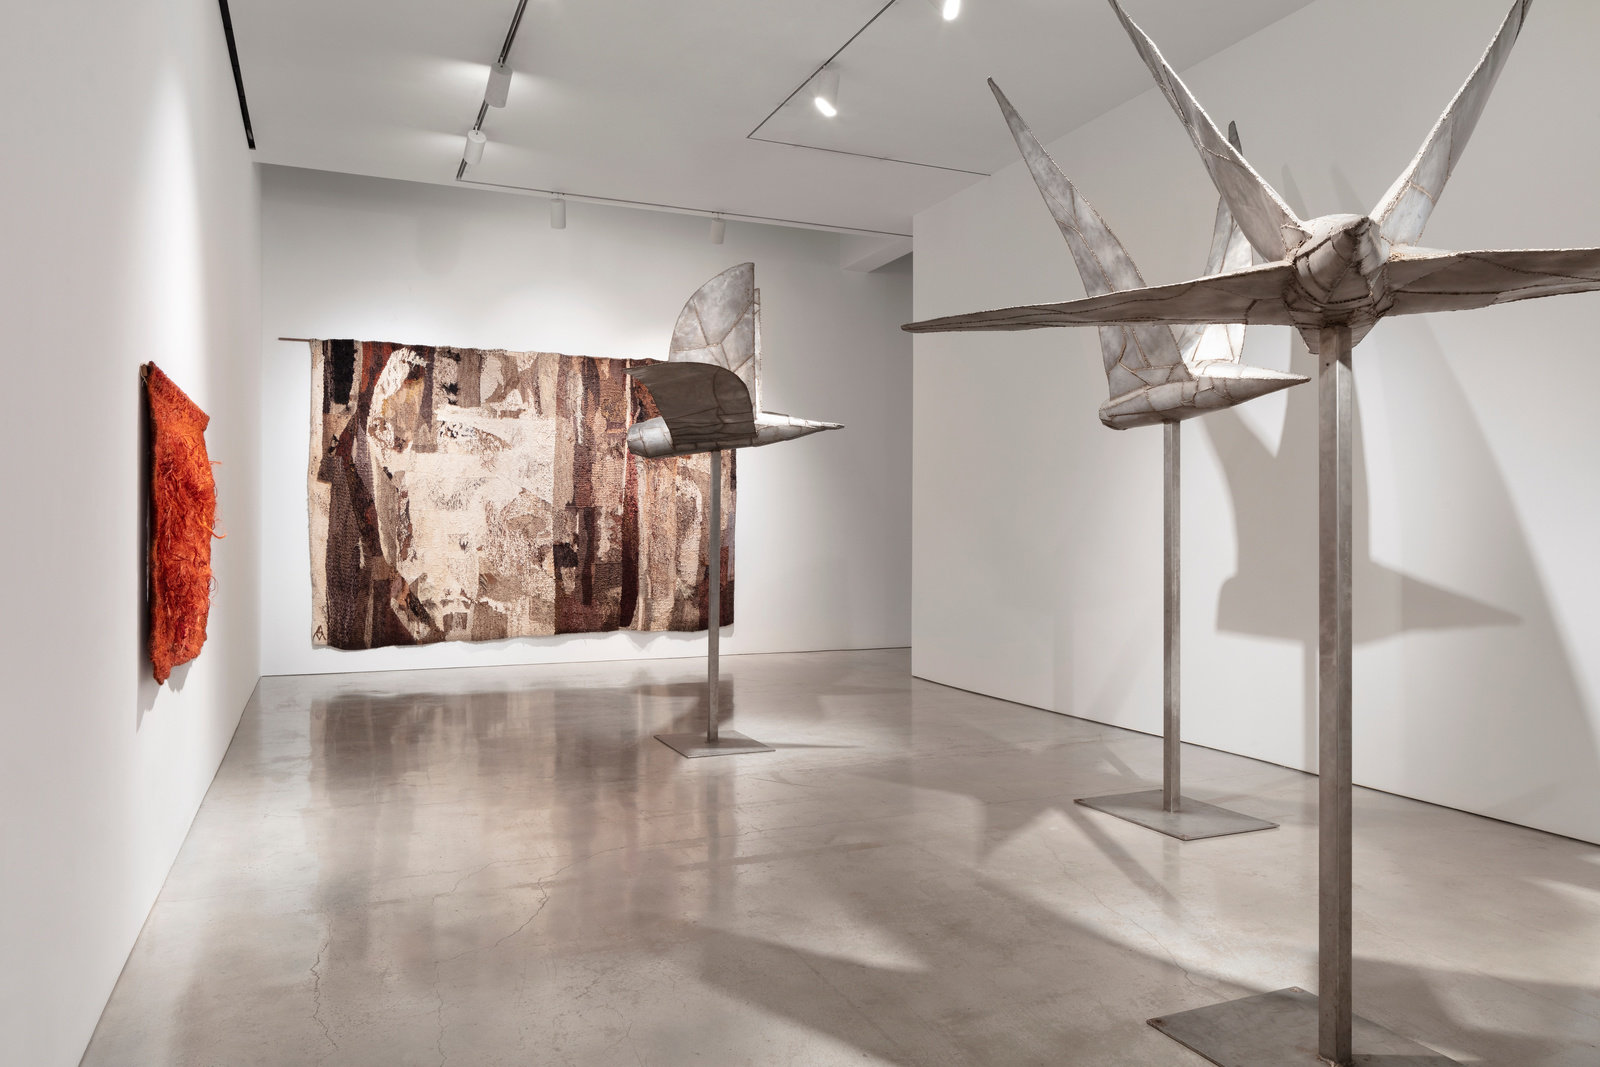 Installation view 3 by magdalena abakanowicz and anselm kiefer marlborough new york